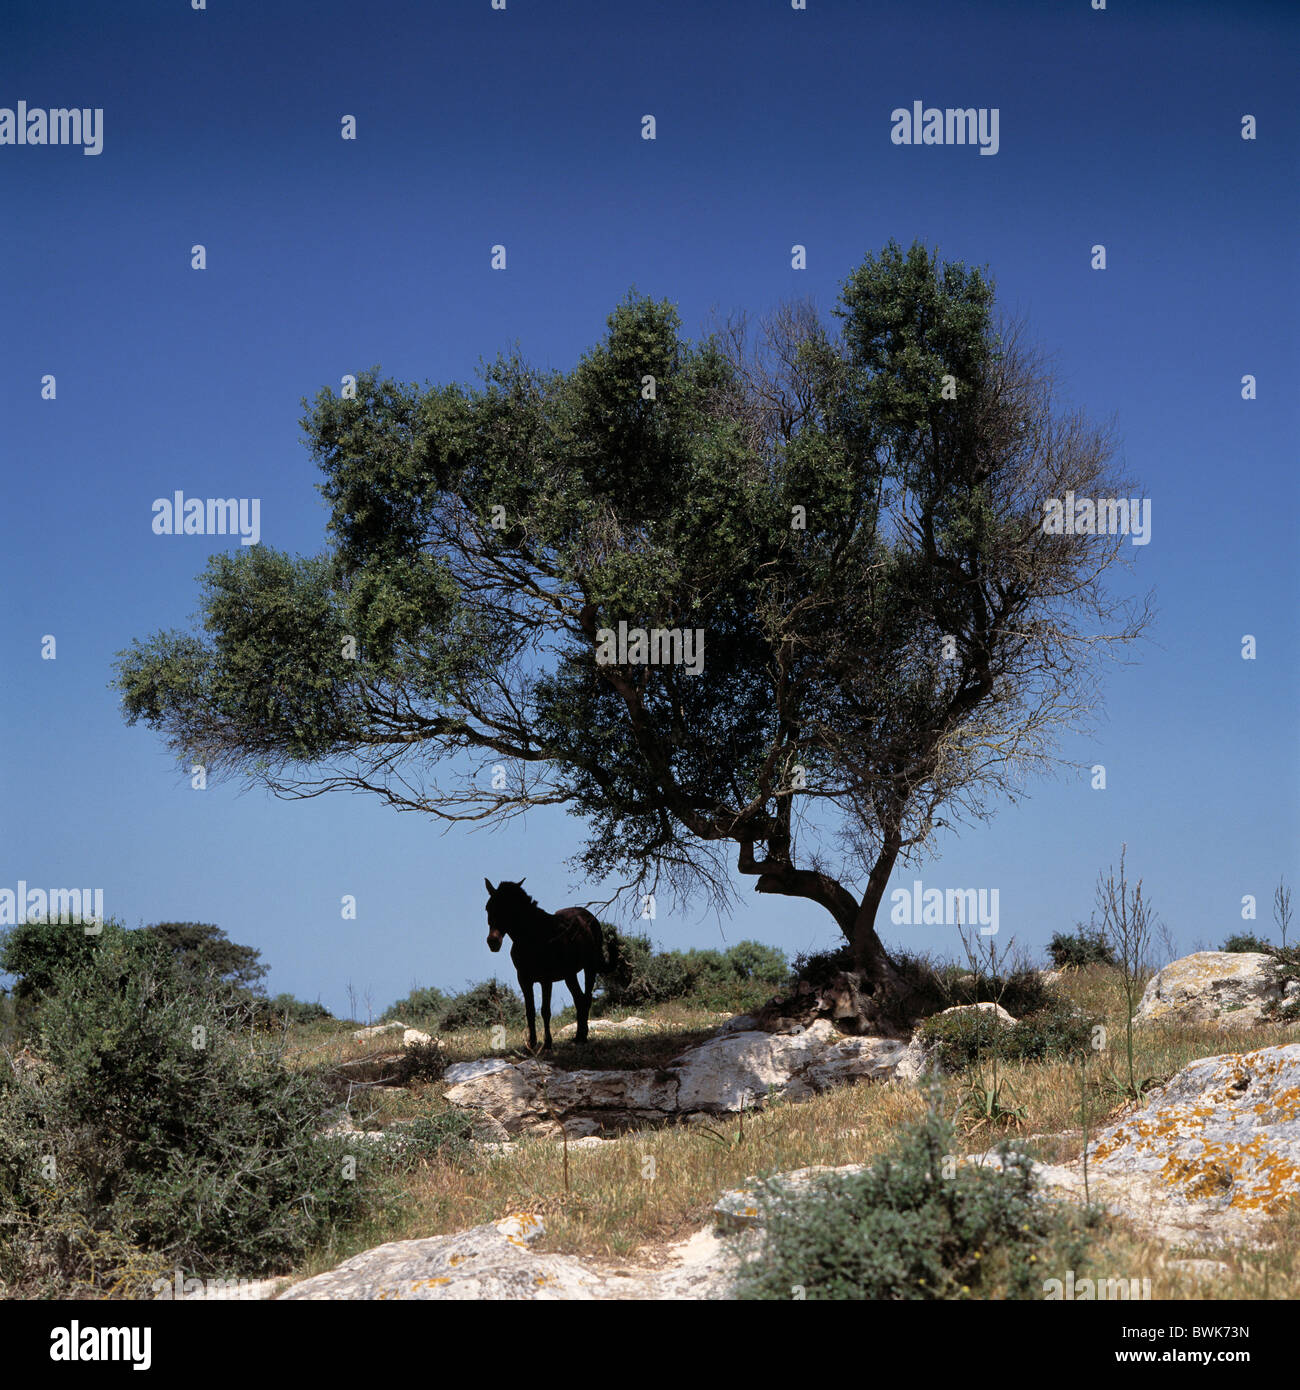 horse tree protection sun sun protection animals animal south shade midday heat midday sun rock scenery Me - Stock Image